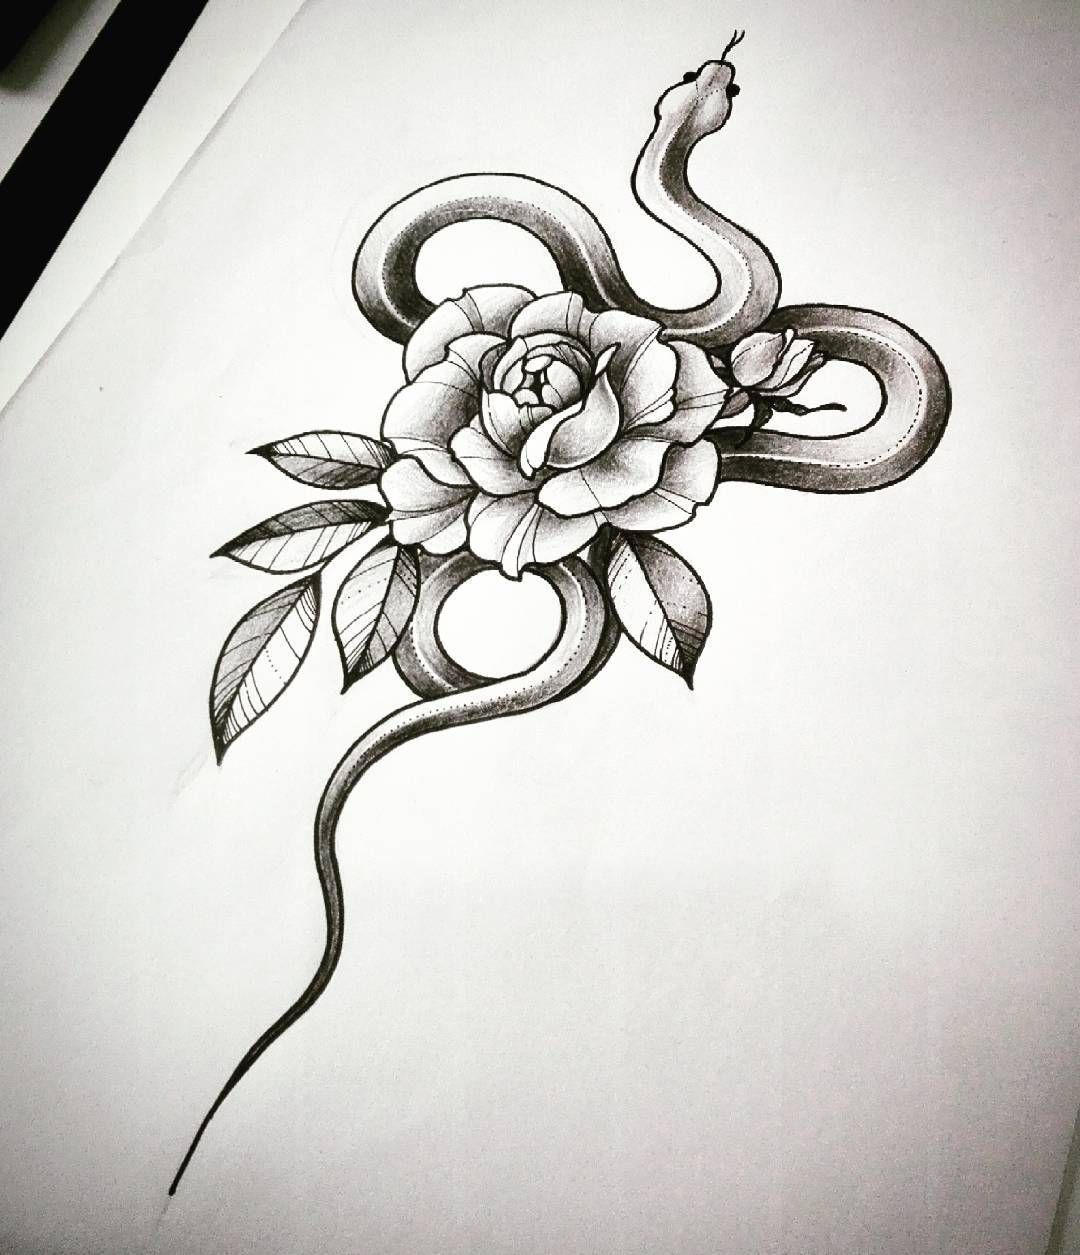 Pin by ThatSoBasic on Tattoo Dreams Snake tattoo design